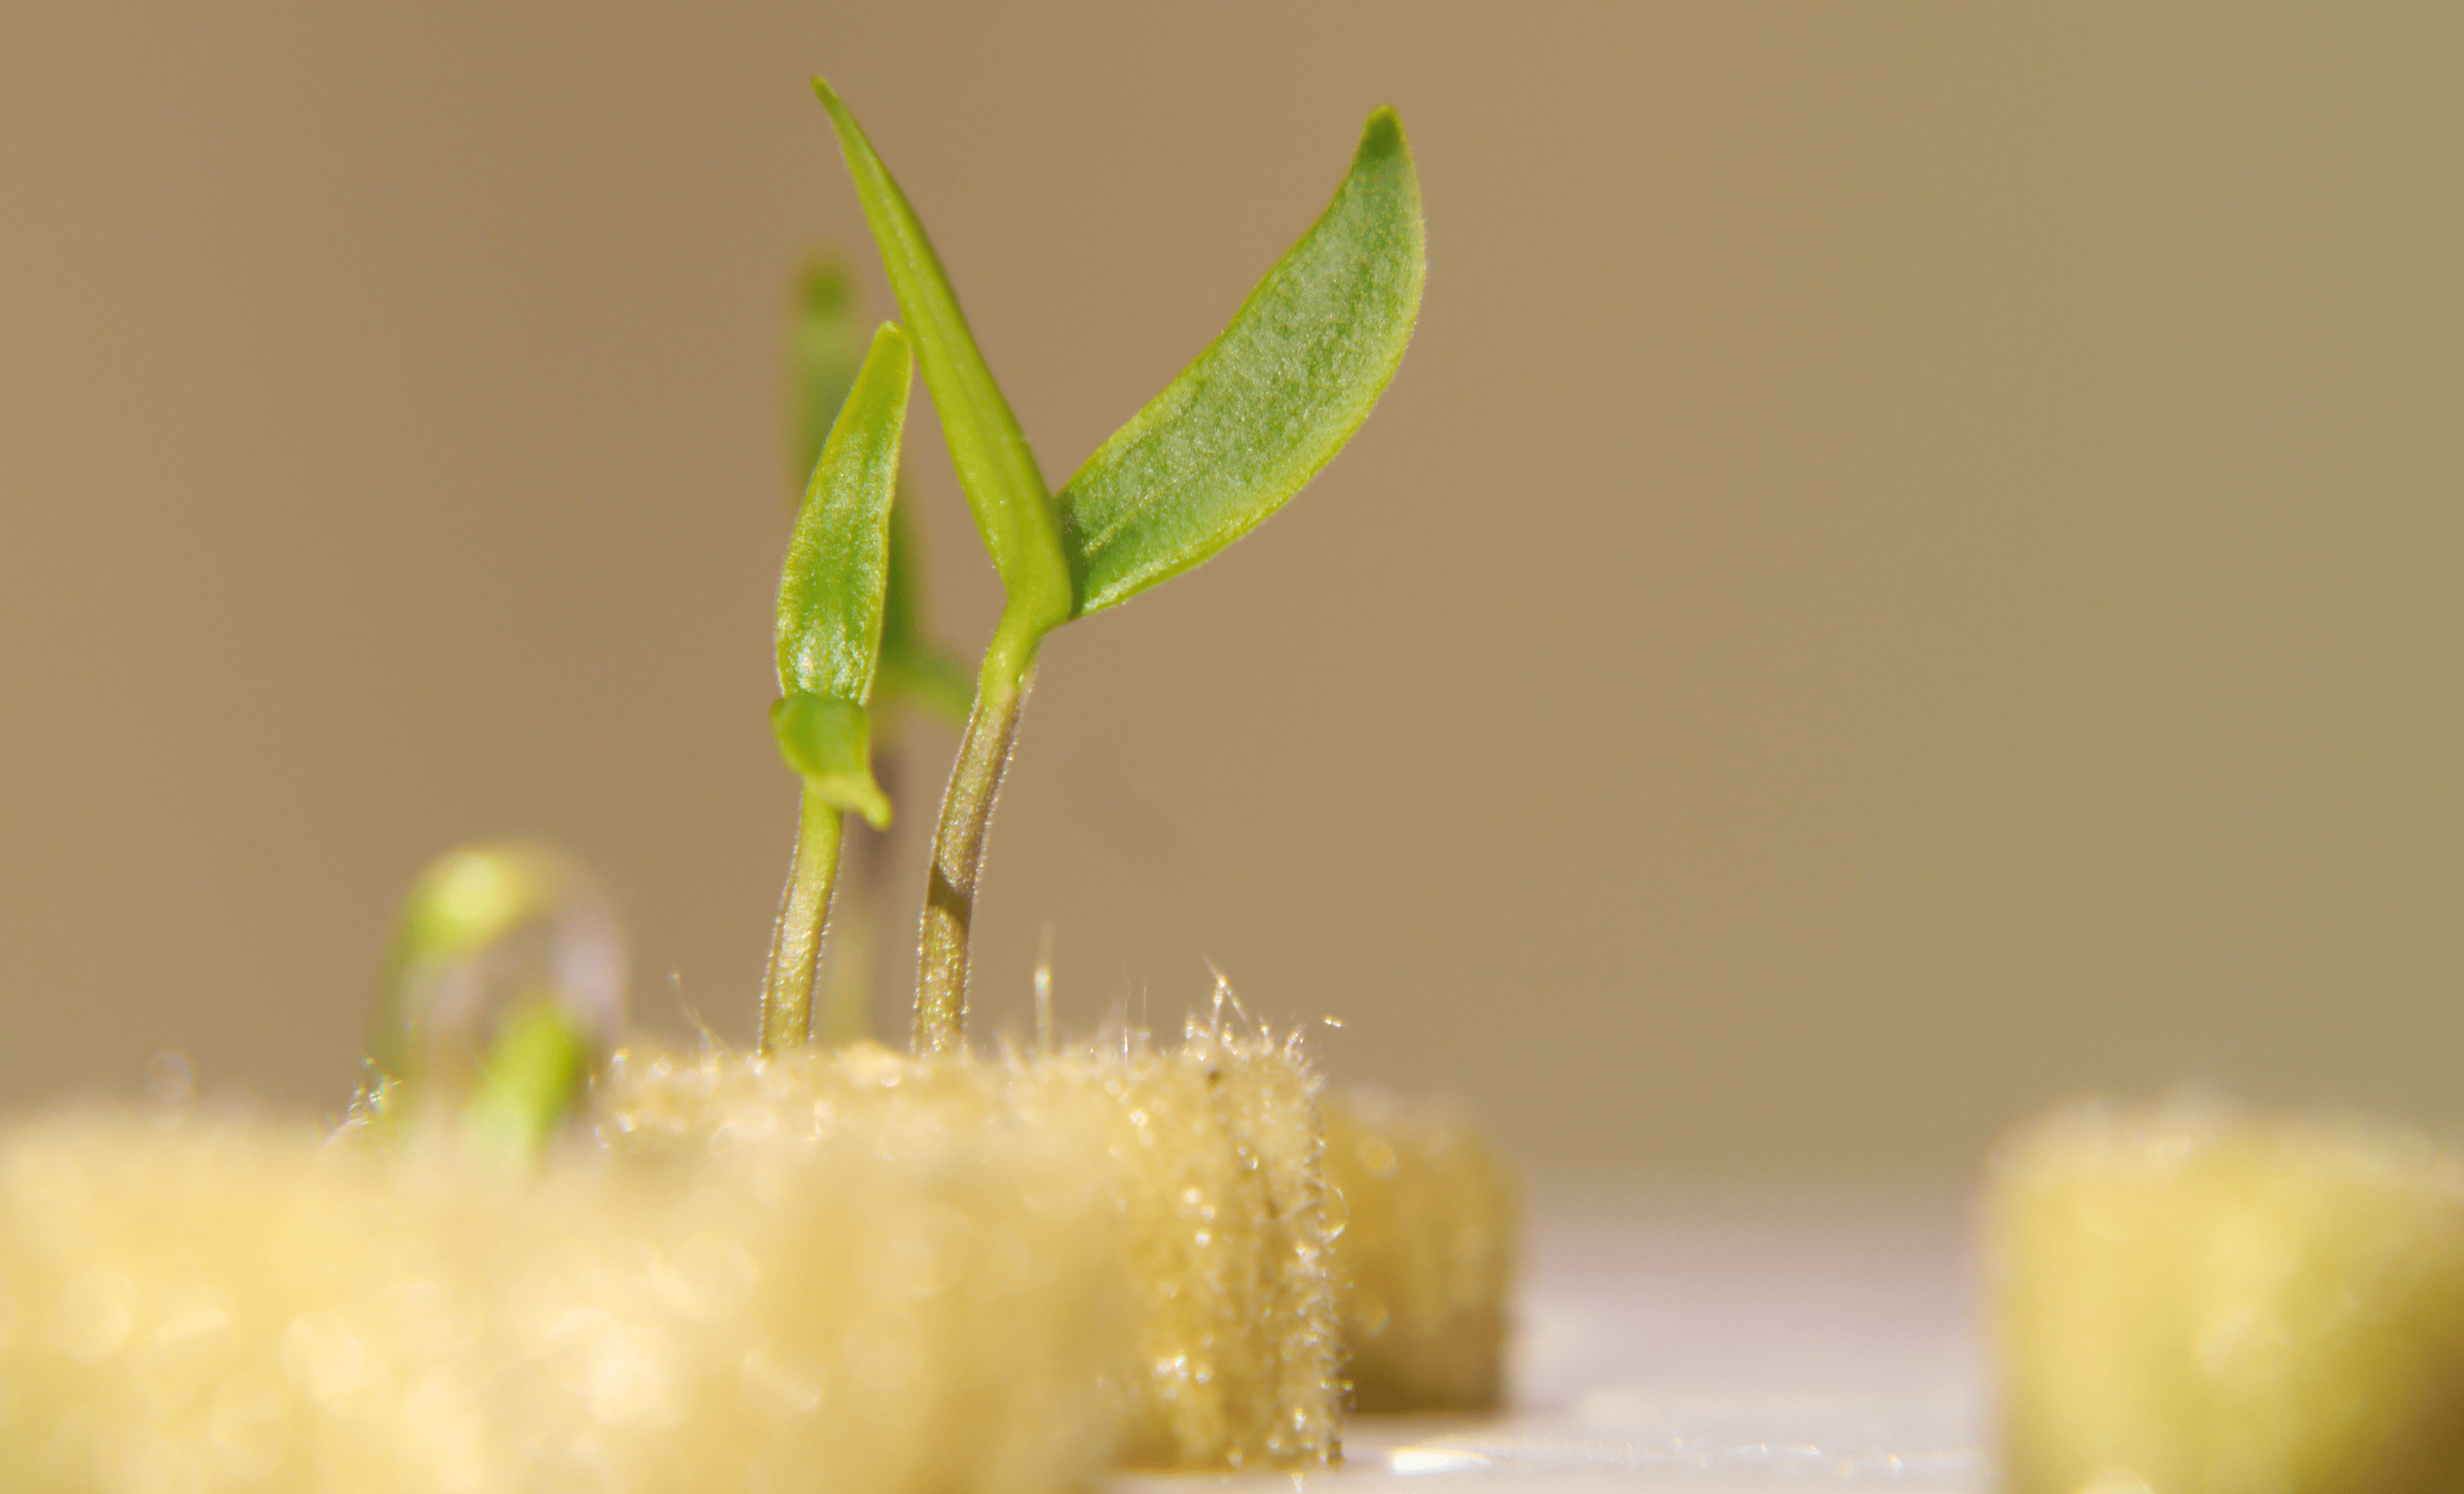 How to germinate a seed in hydroponics